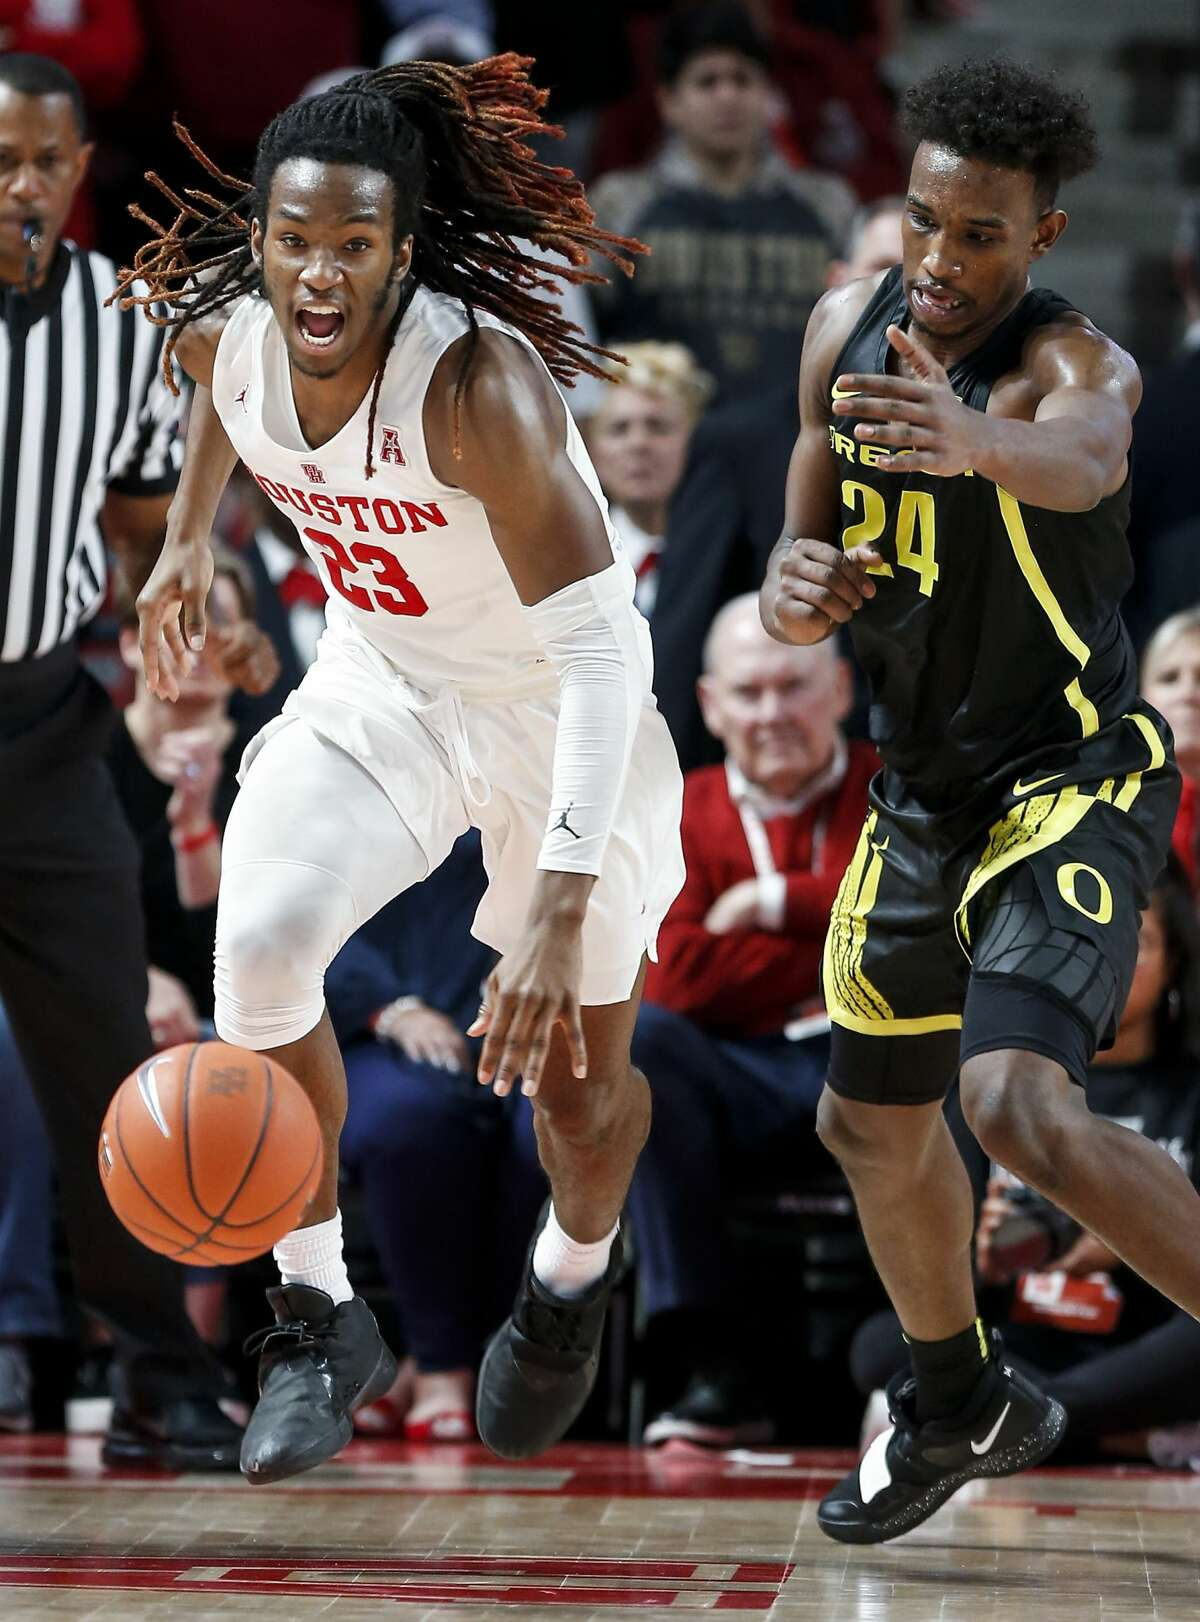 Houston forward Cedrick Alley Jr. (23) runs up the court past Oregon forward Abu Kigab (24) as he breaks the press during the second half on a NCAA basketball game at Fertitta Center on Saturday, Dec. 1, 2018, in Houston.